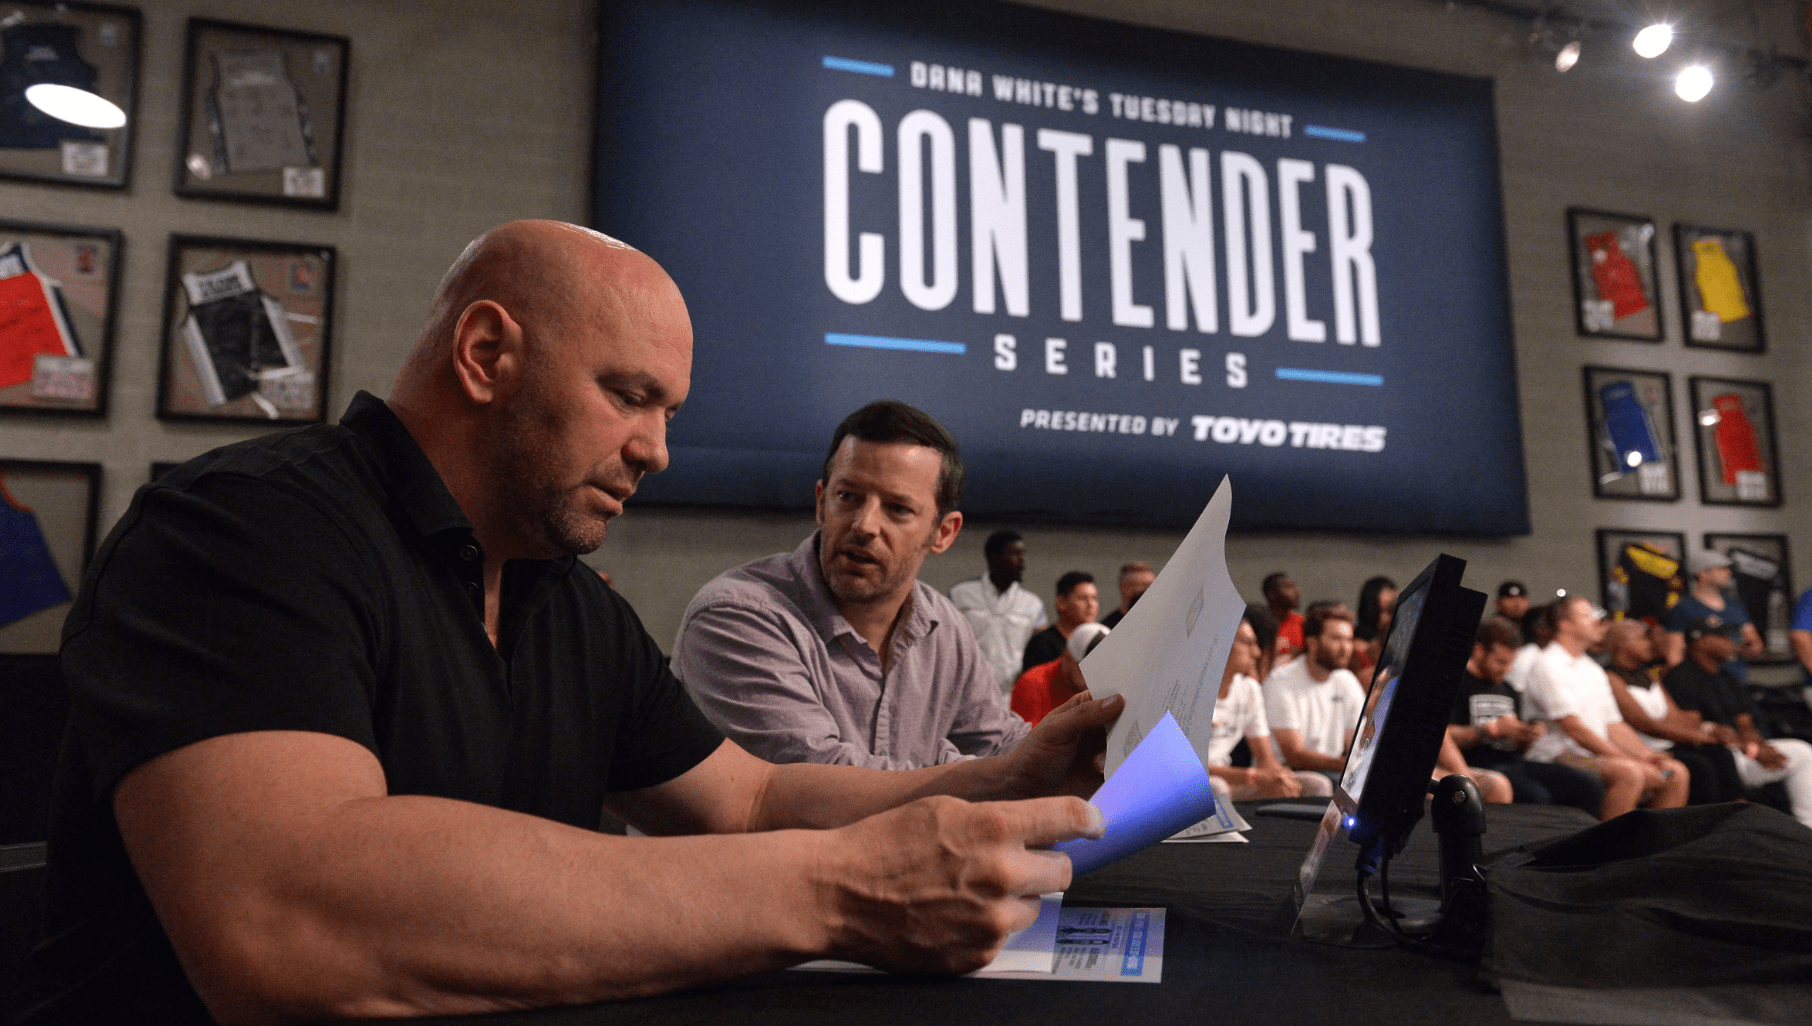 Dana White's Contender Series To Come Back This Summer